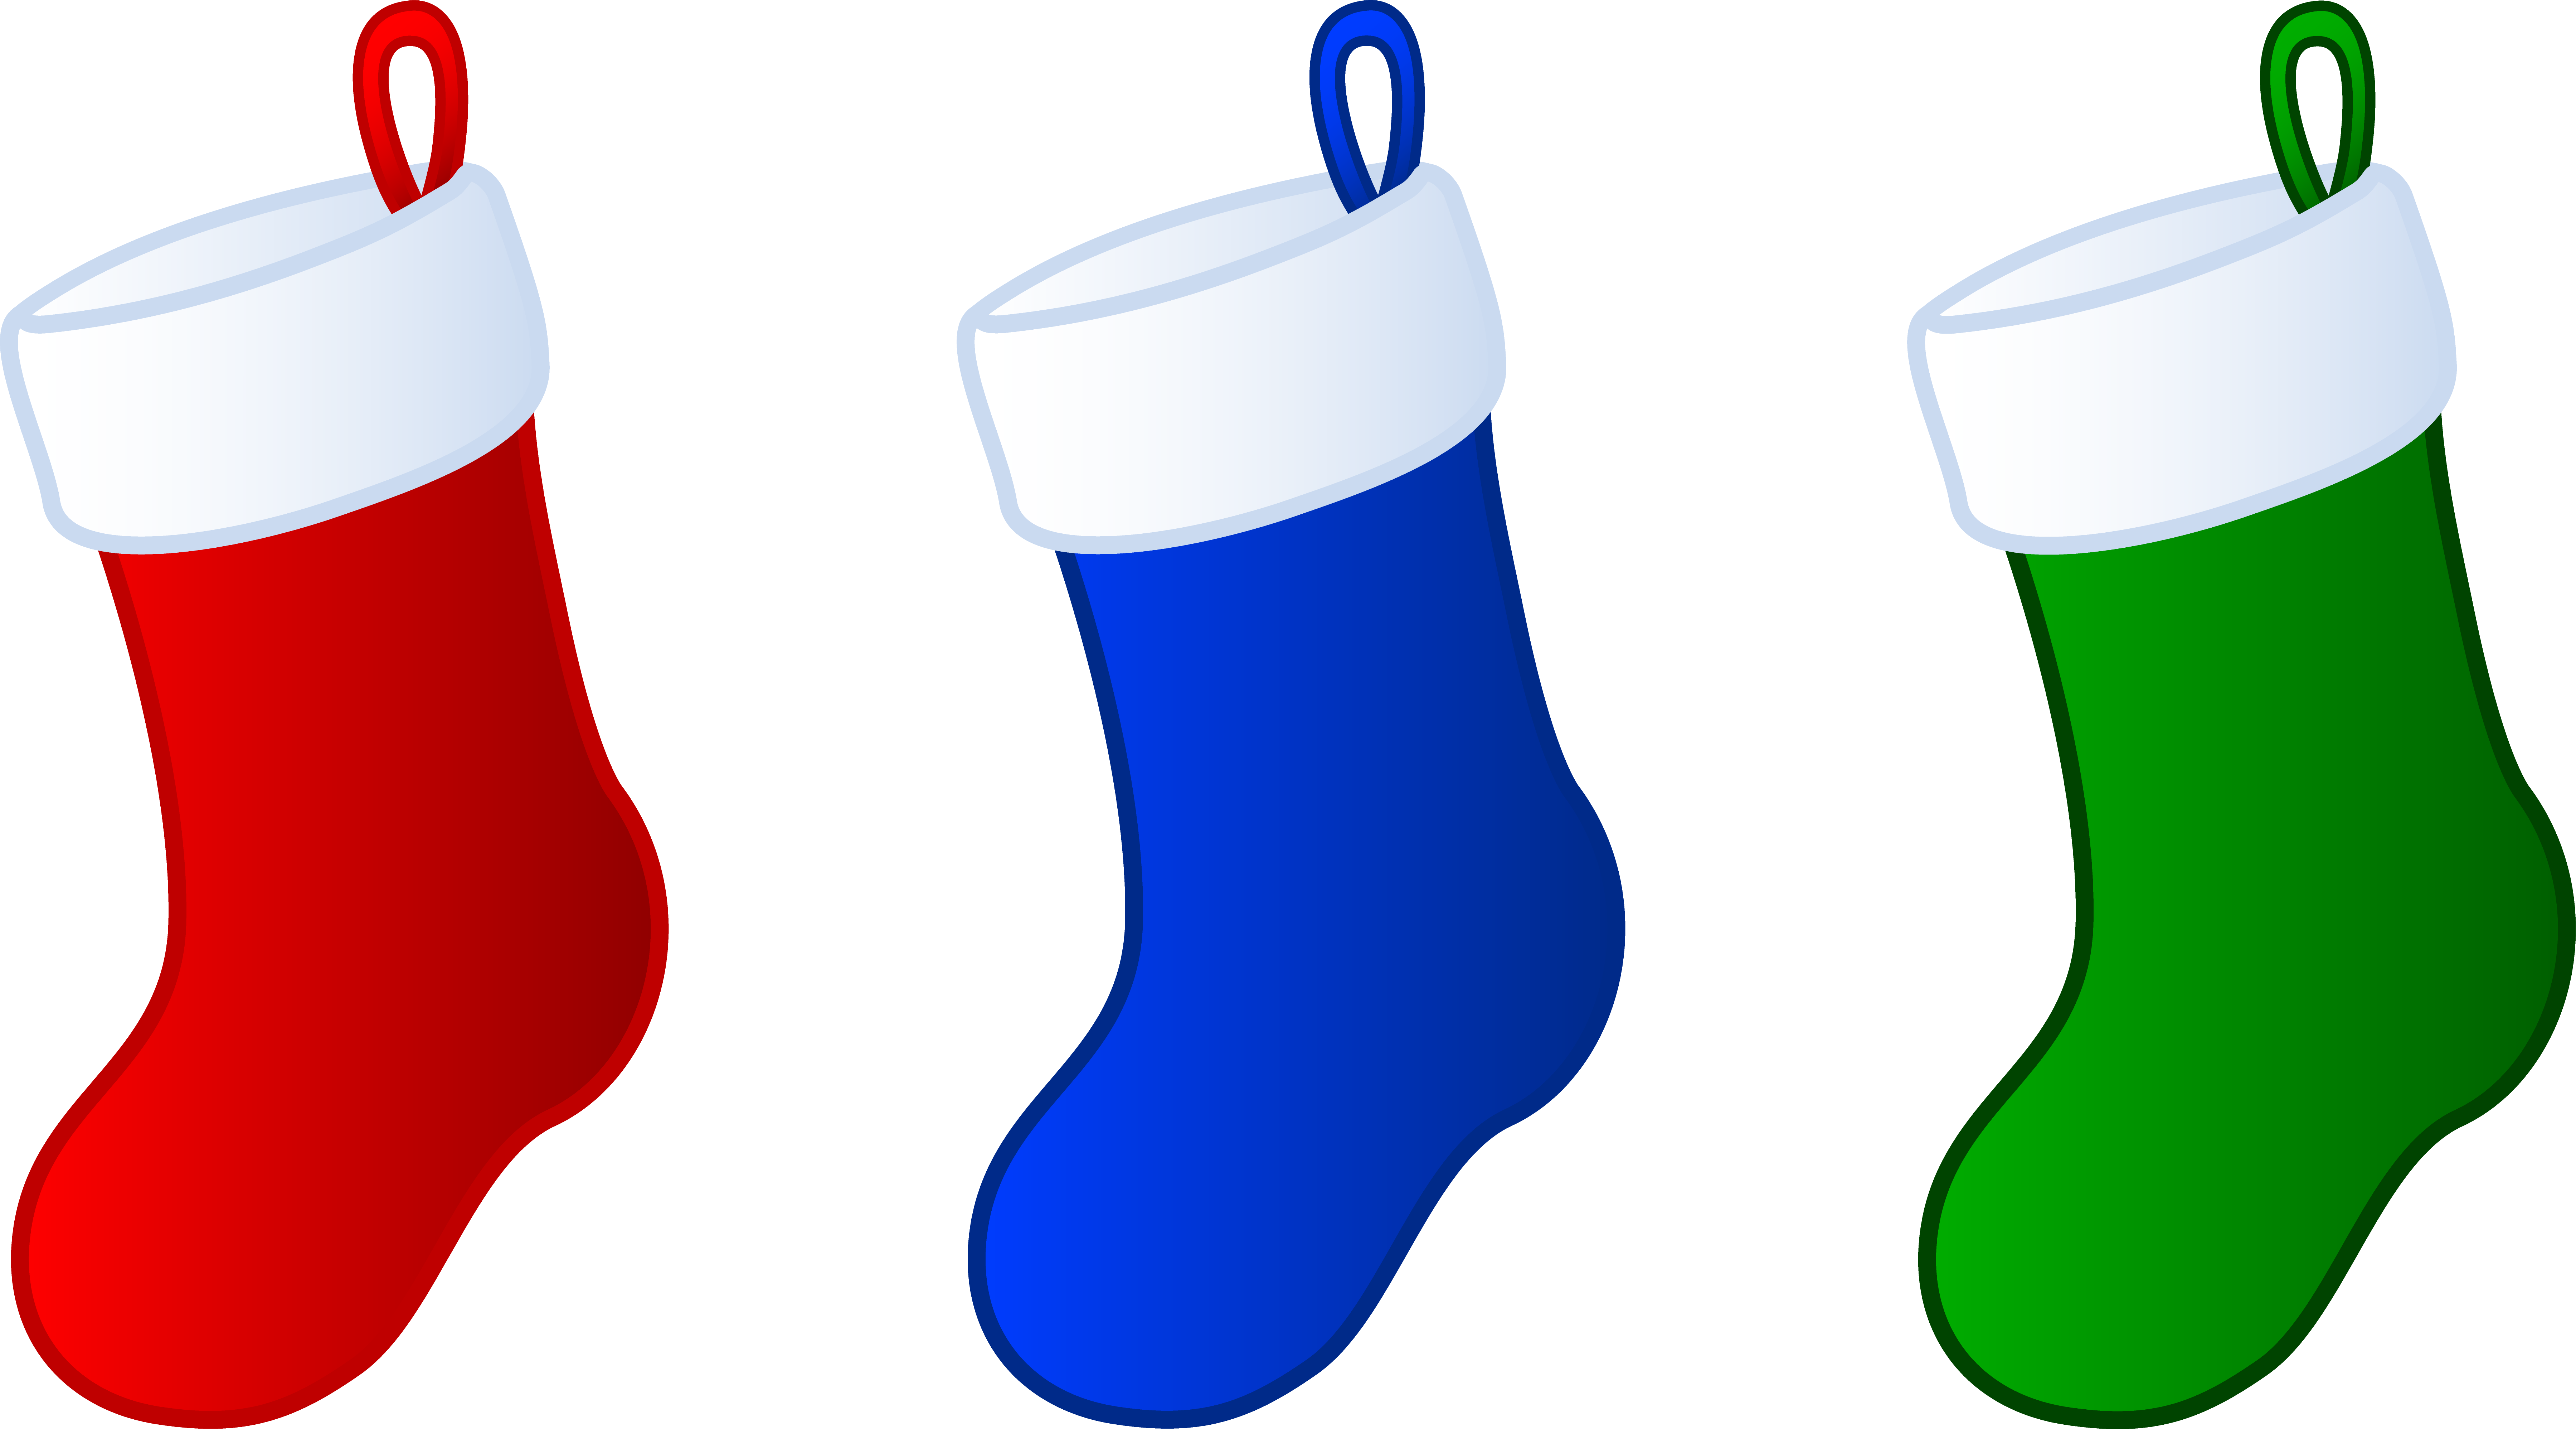 Stocking Clip Art Free   Clipart library-Stocking Clip Art Free   Clipart library - Free Clipart Images-8